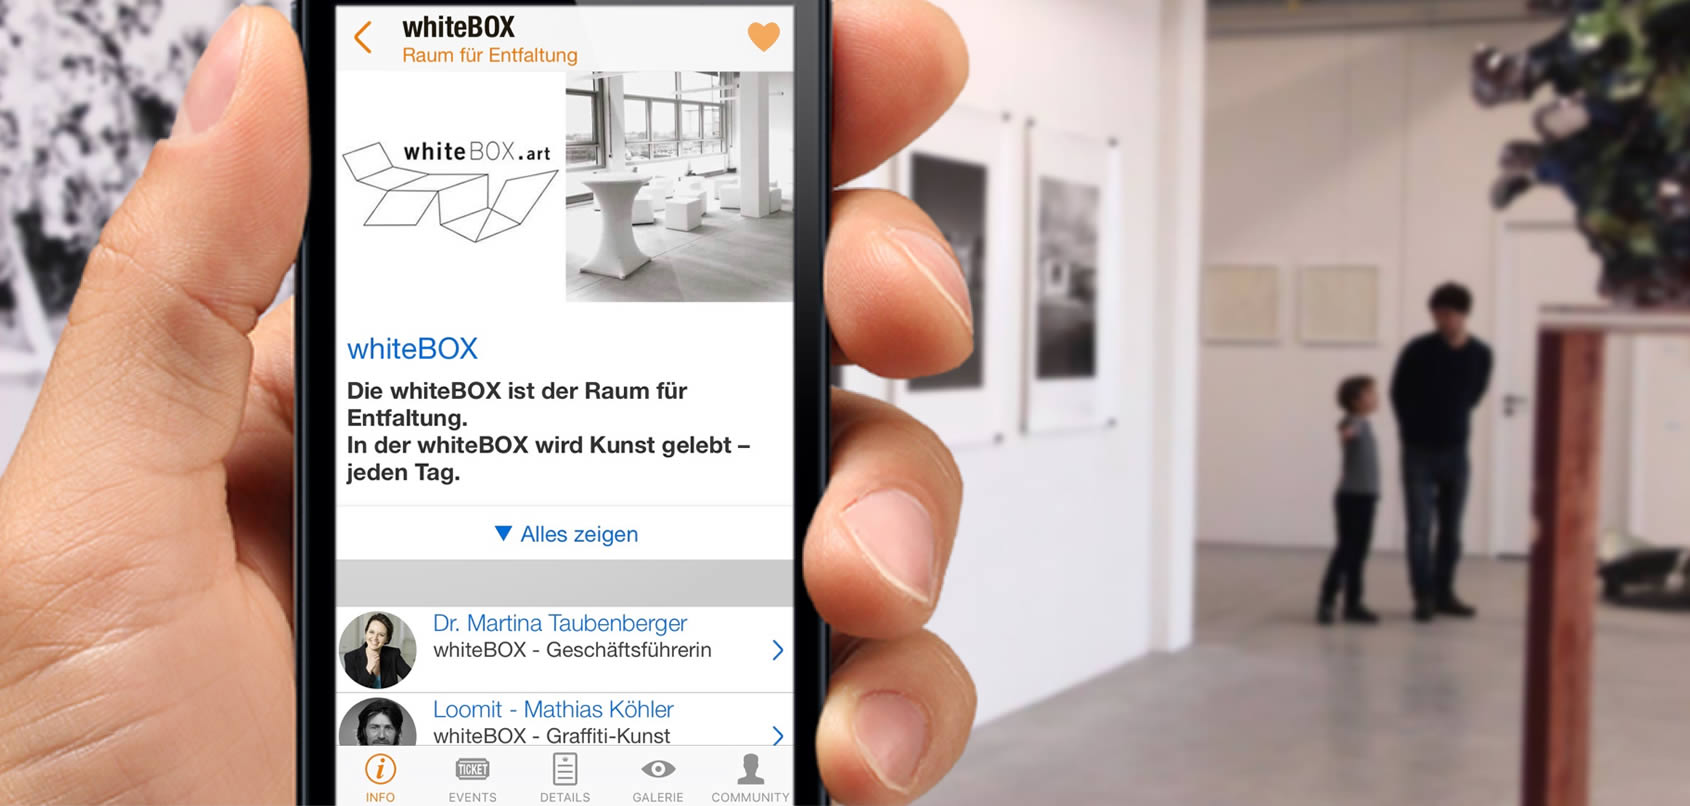 Werksviertel App Kunst & Kultur WhiteBOX